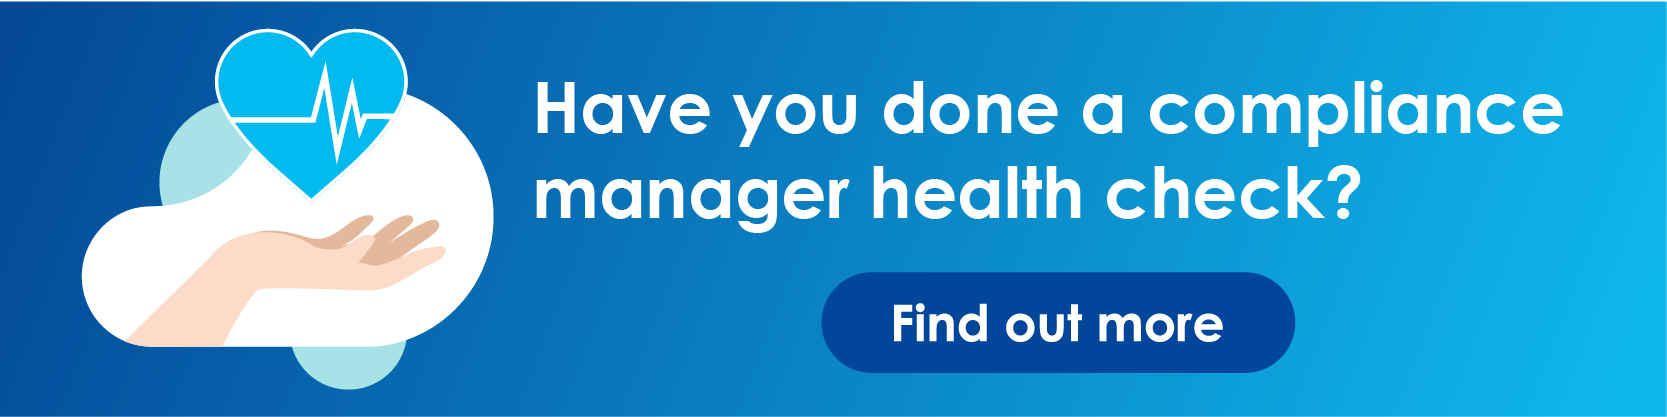 Have you fone a compliance manager health check? Click here to find out more